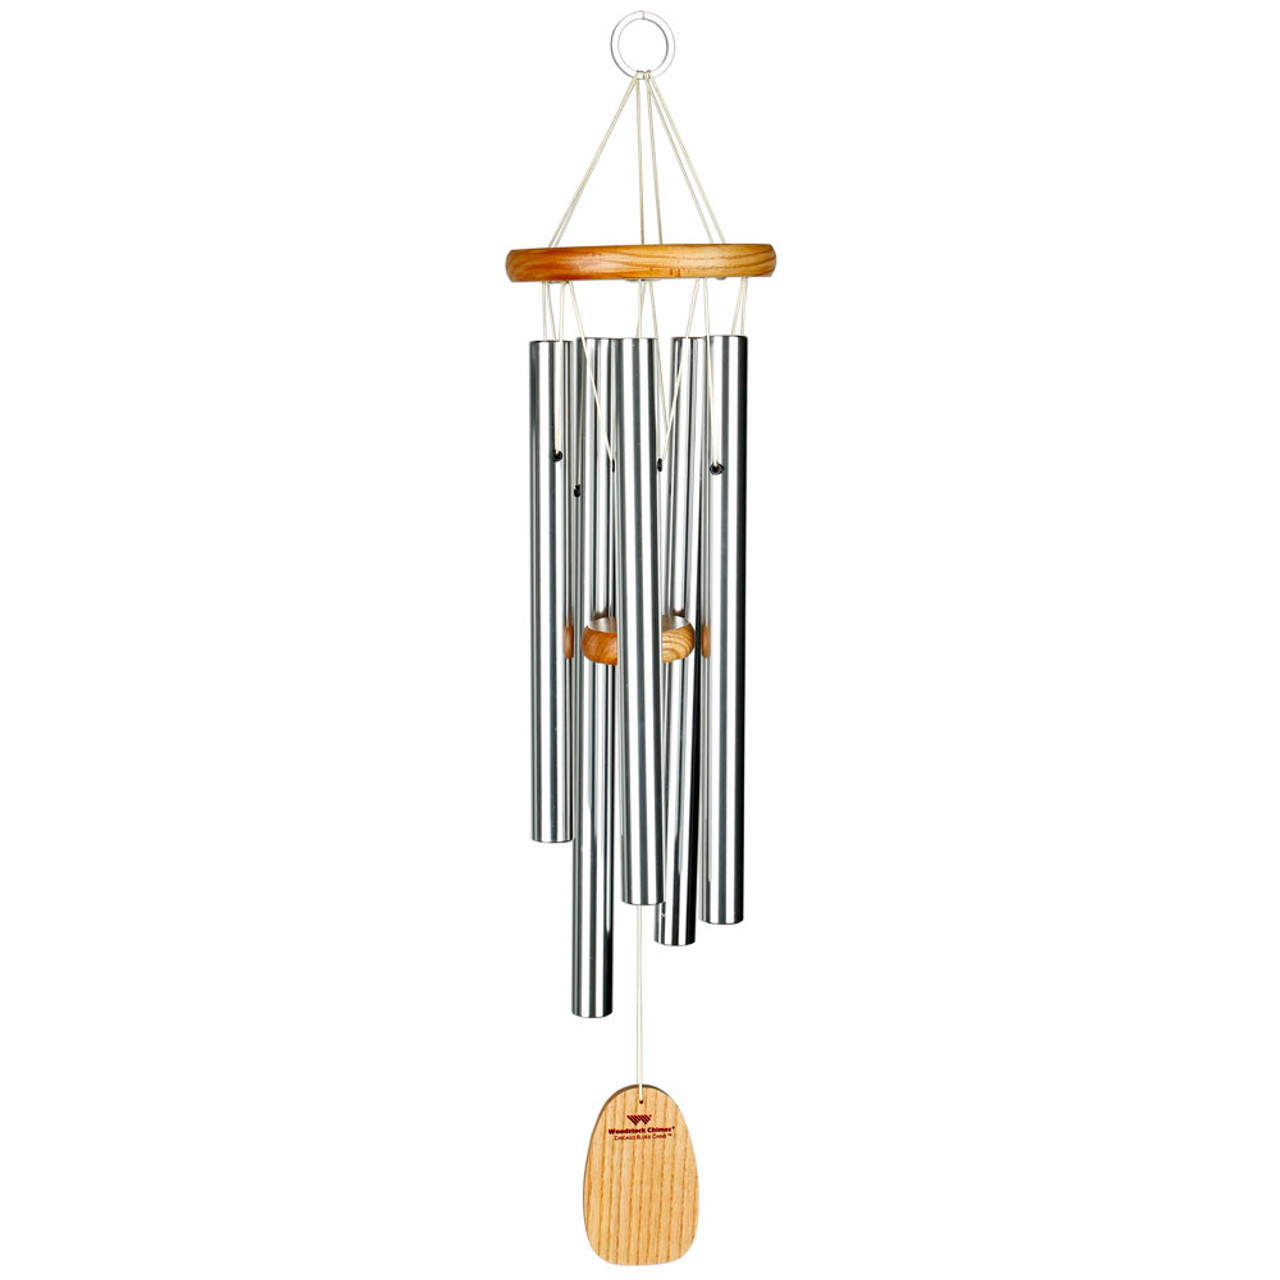 Woodstock Chimes Chicago Blues Chime CWS